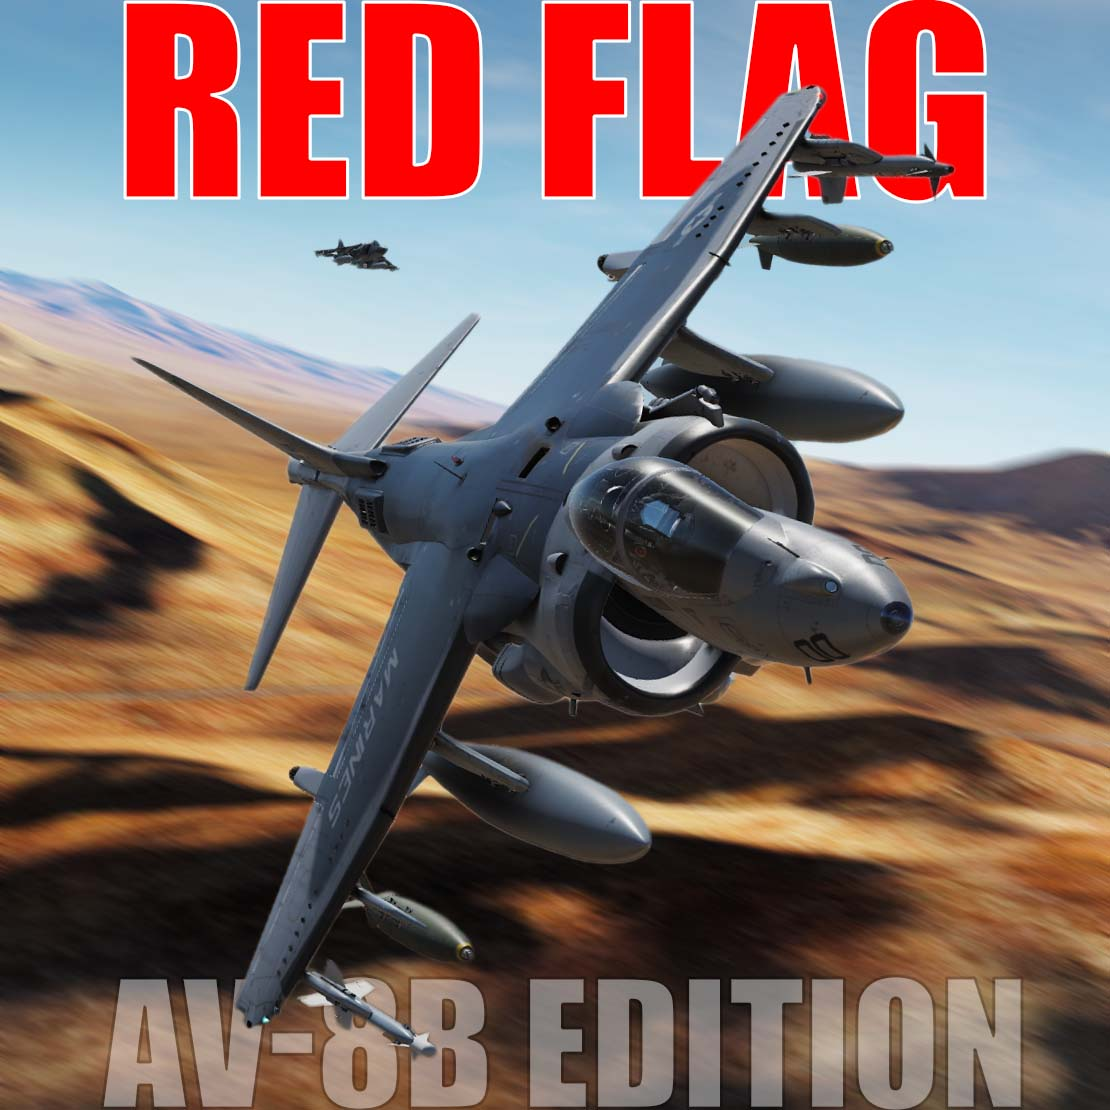 RED FLAG - Harrier Mission 1 (ver 1.61 updated 12 December 2019)